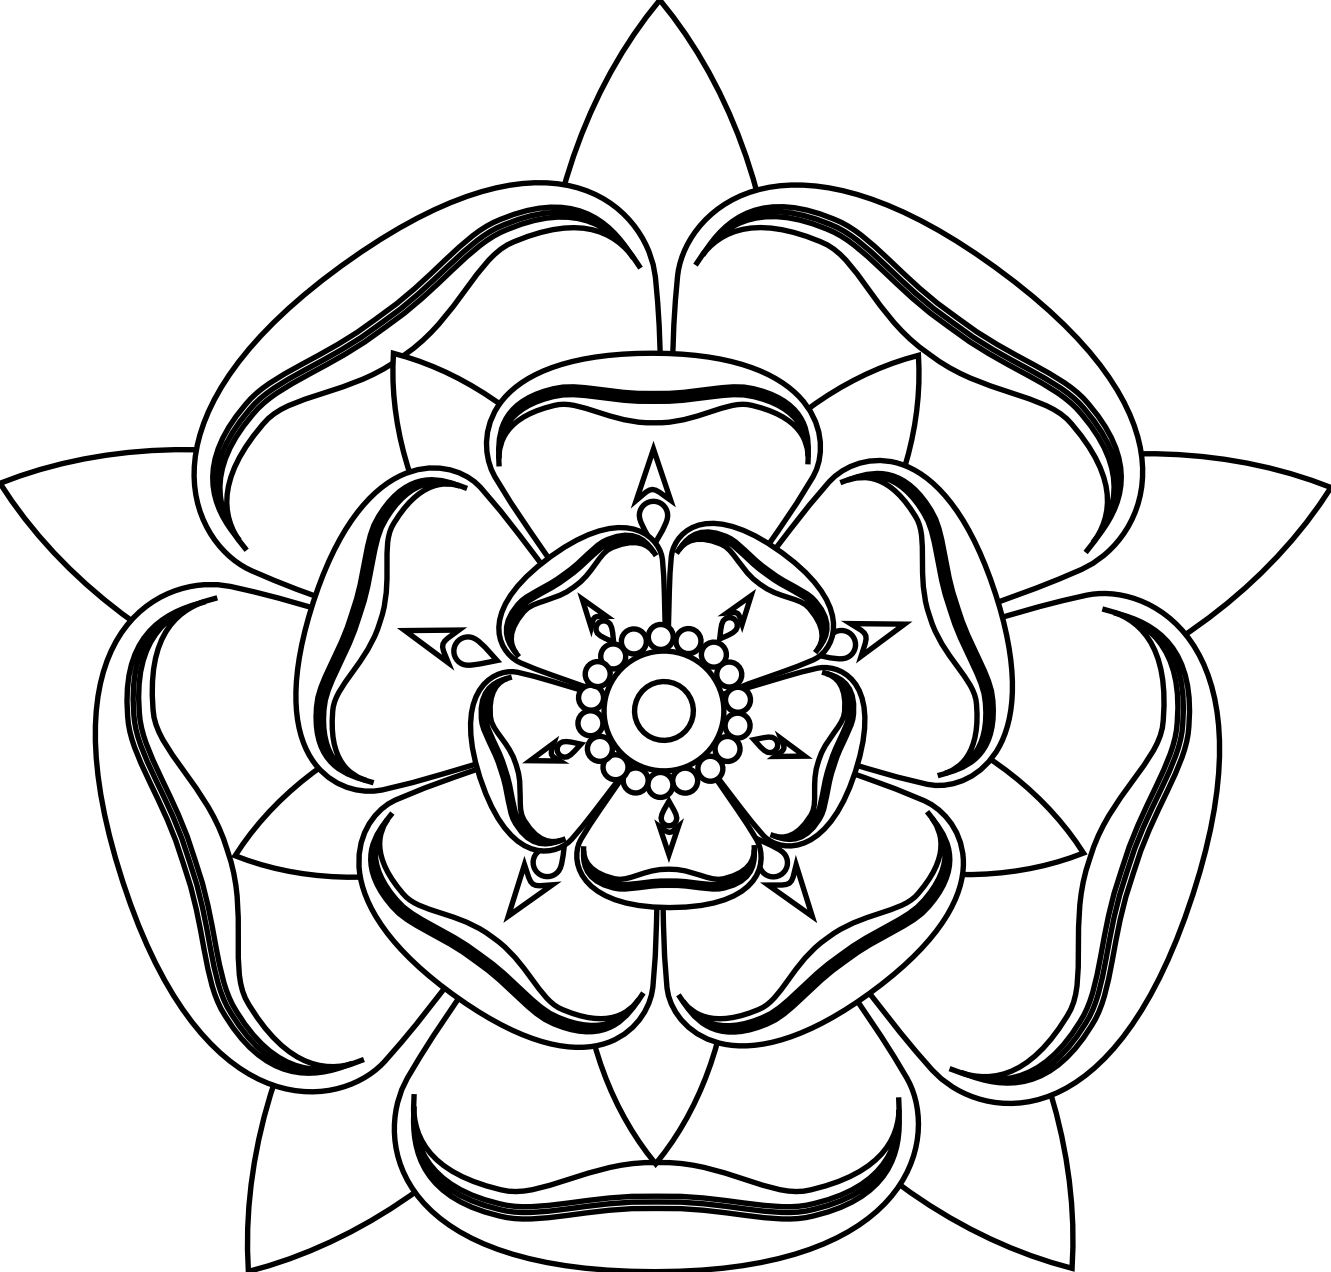 Tudor rose tattoo black google search tattoo ideas pinterest the five petaled rose symbol of venus the path of beauty leads to power the leaves of a plant draw buycottarizona Choice Image